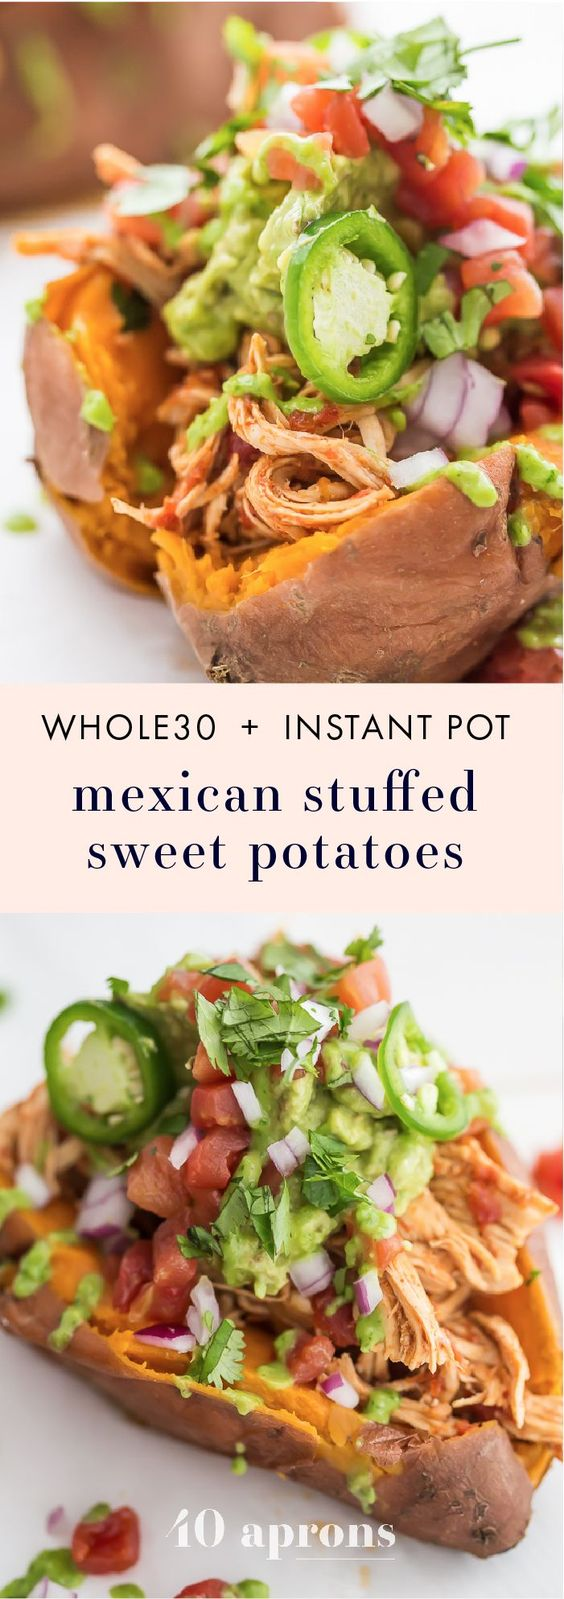 Mexican Chicken Stuffed Sweet Potatoes (Whole30, Paleo, Instant Pot)